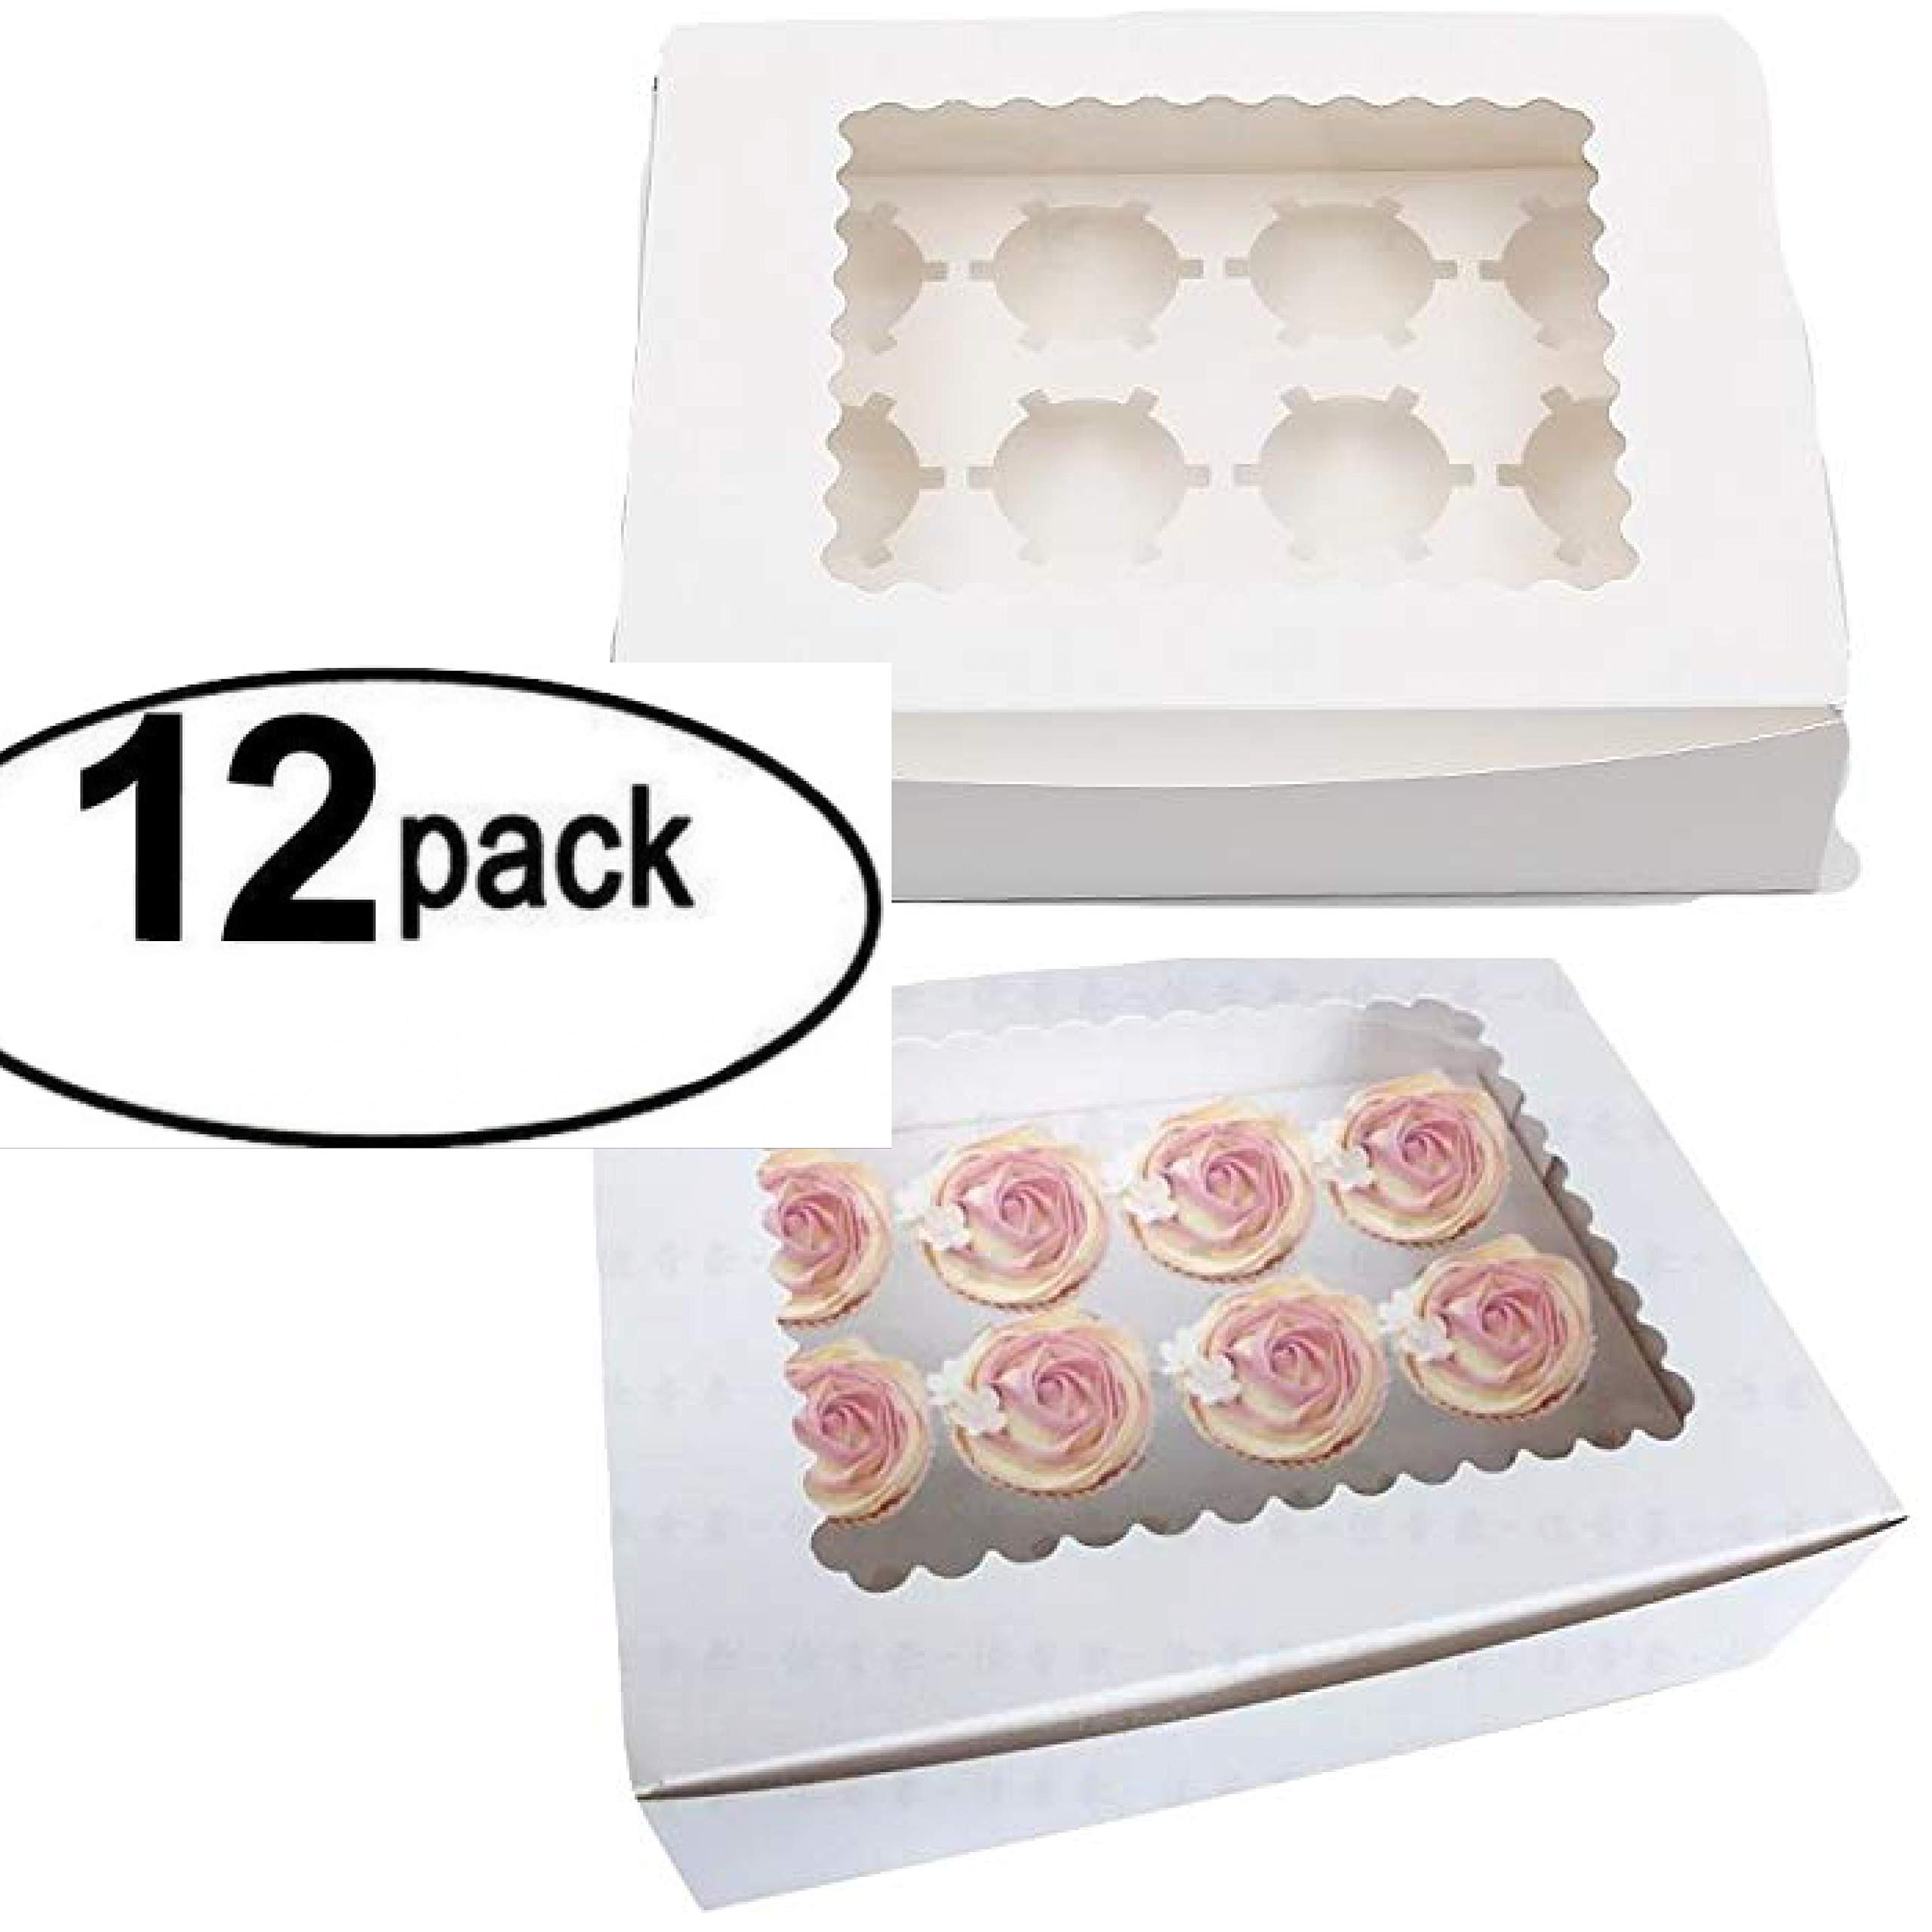 Window Bakery Cupcake Box With Insert, Bakery Boxes for Cupcakes with Display Window 12 Pack Cupcake Boxes (12, 14'' x 10'' x 4'')